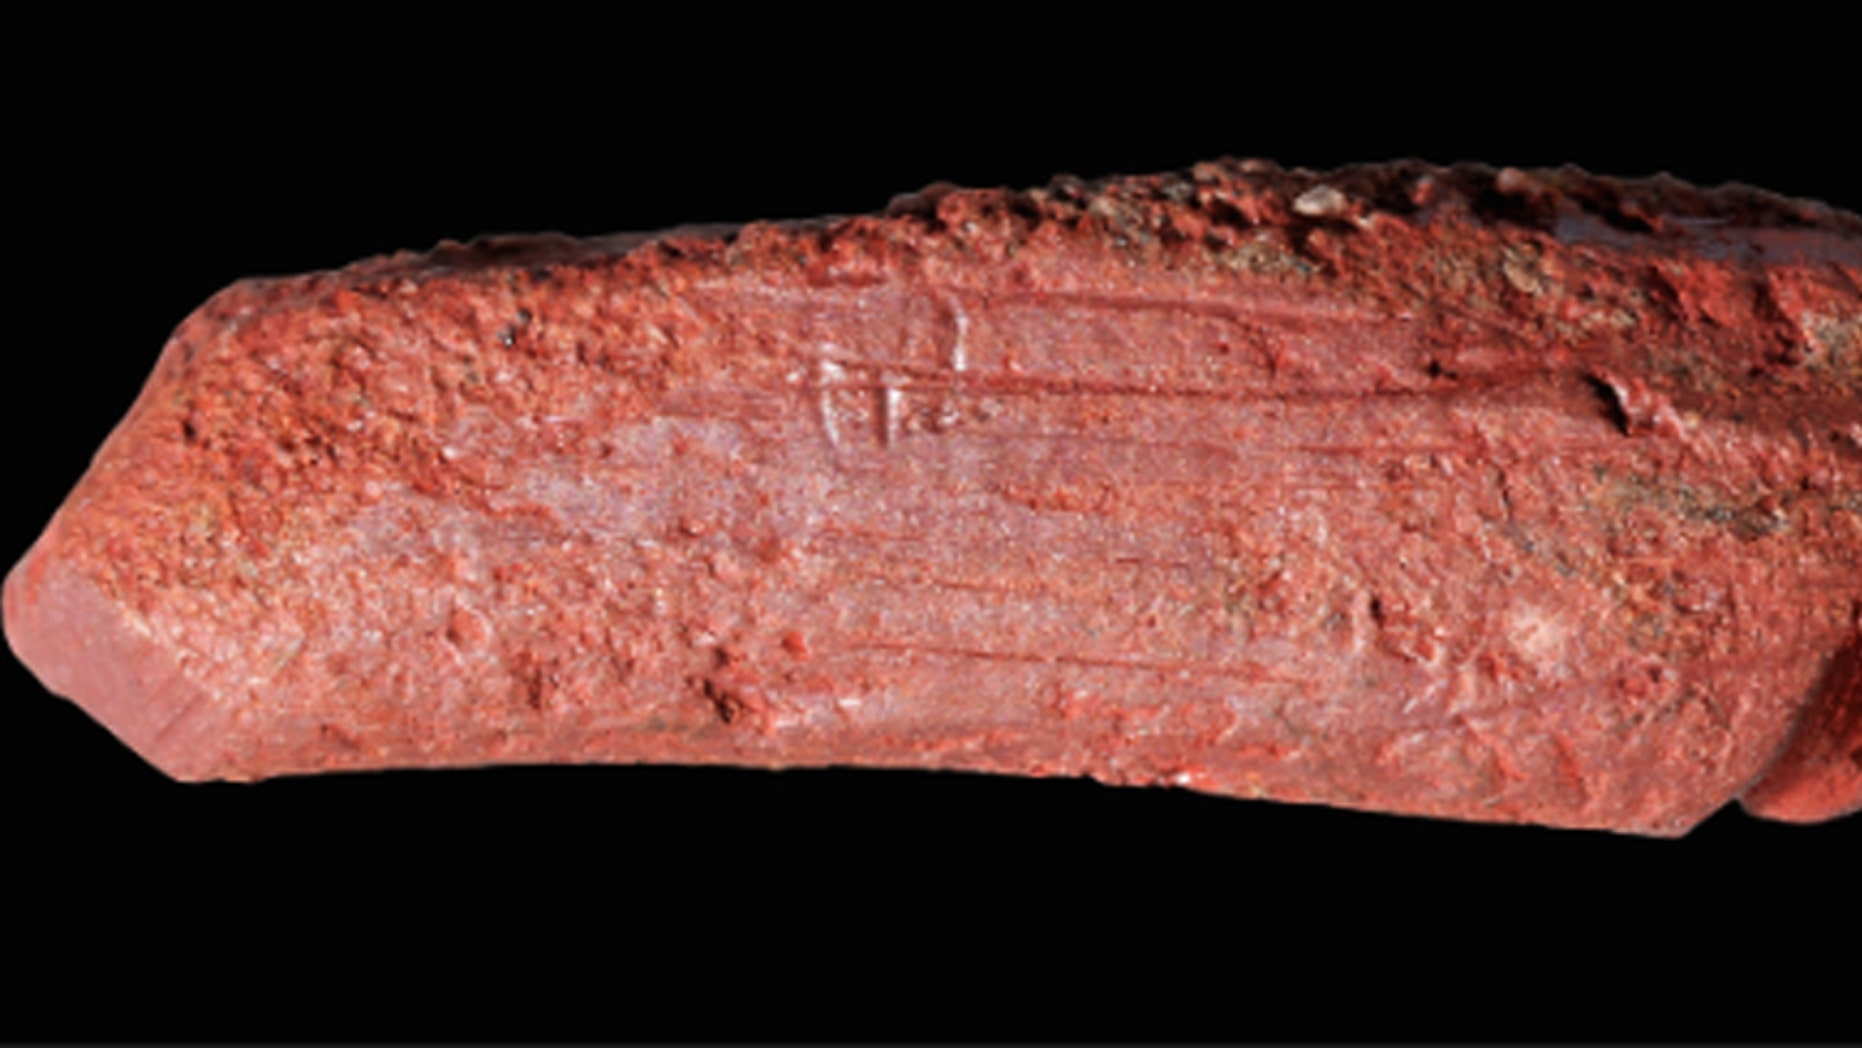 The crayon revealed a sharpened end. (Credit: Paul Shields/University of York)